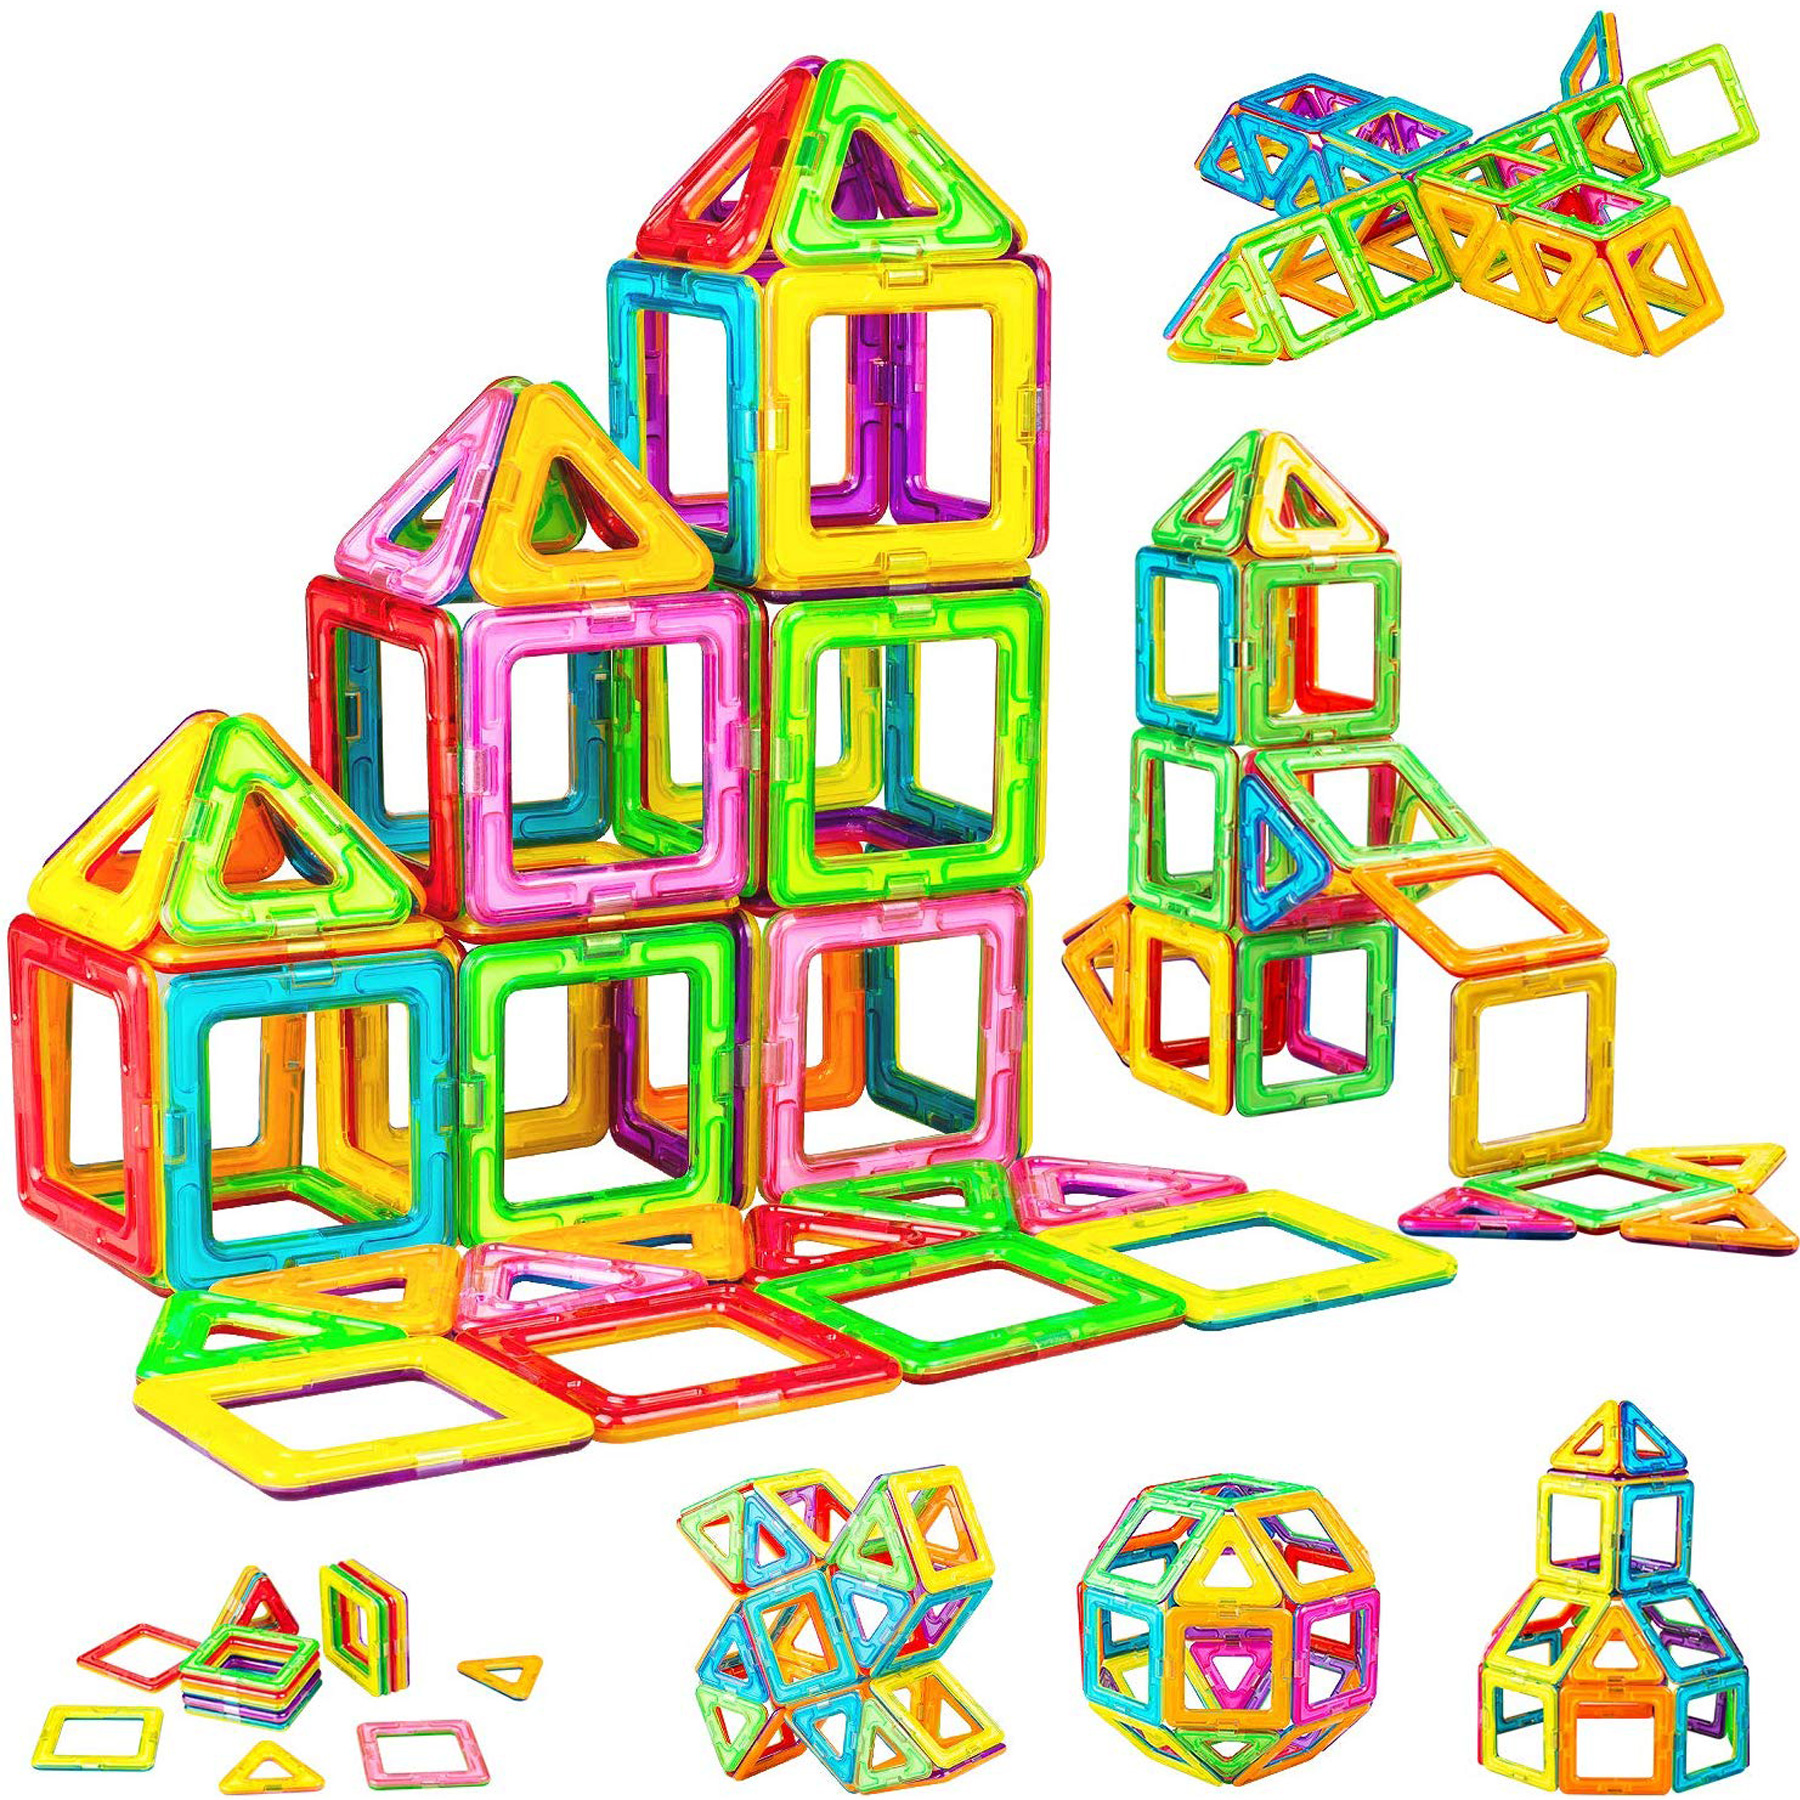 WHIMSWIT Magnetic Blocks, 65 Pieces